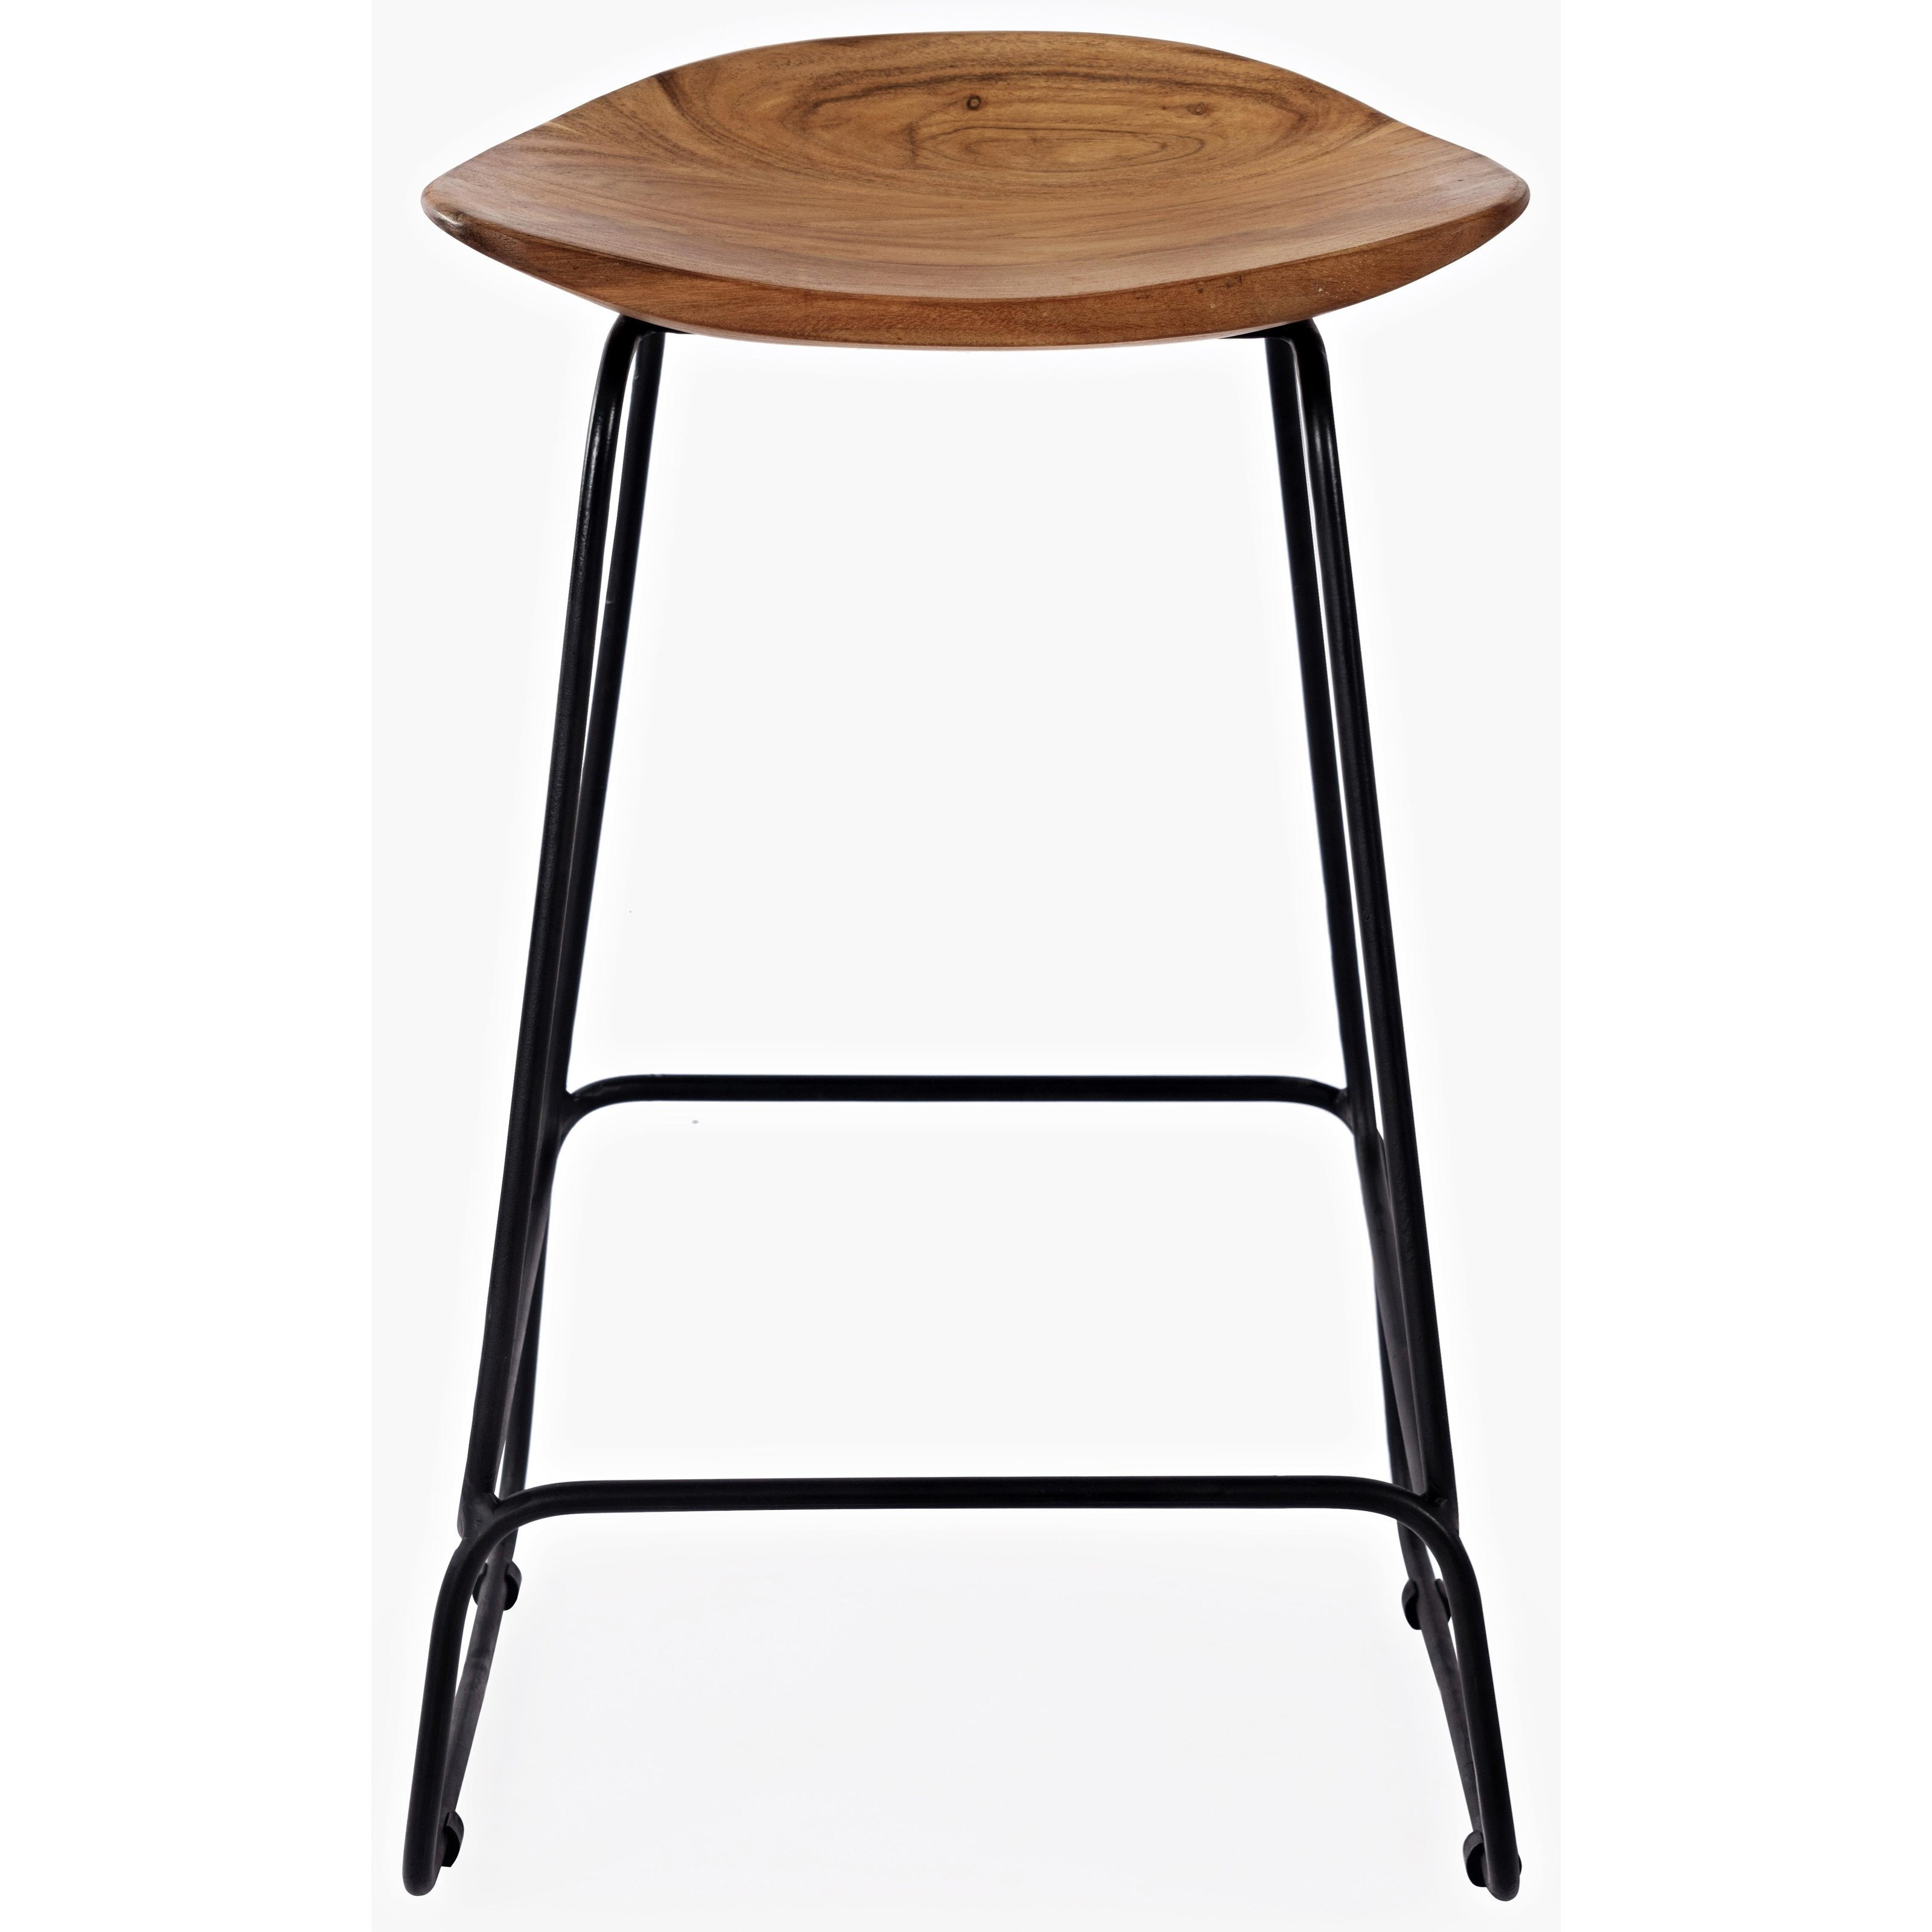 Nature's Edge Backless Stool by Jofran at Lapeer Furniture & Mattress Center